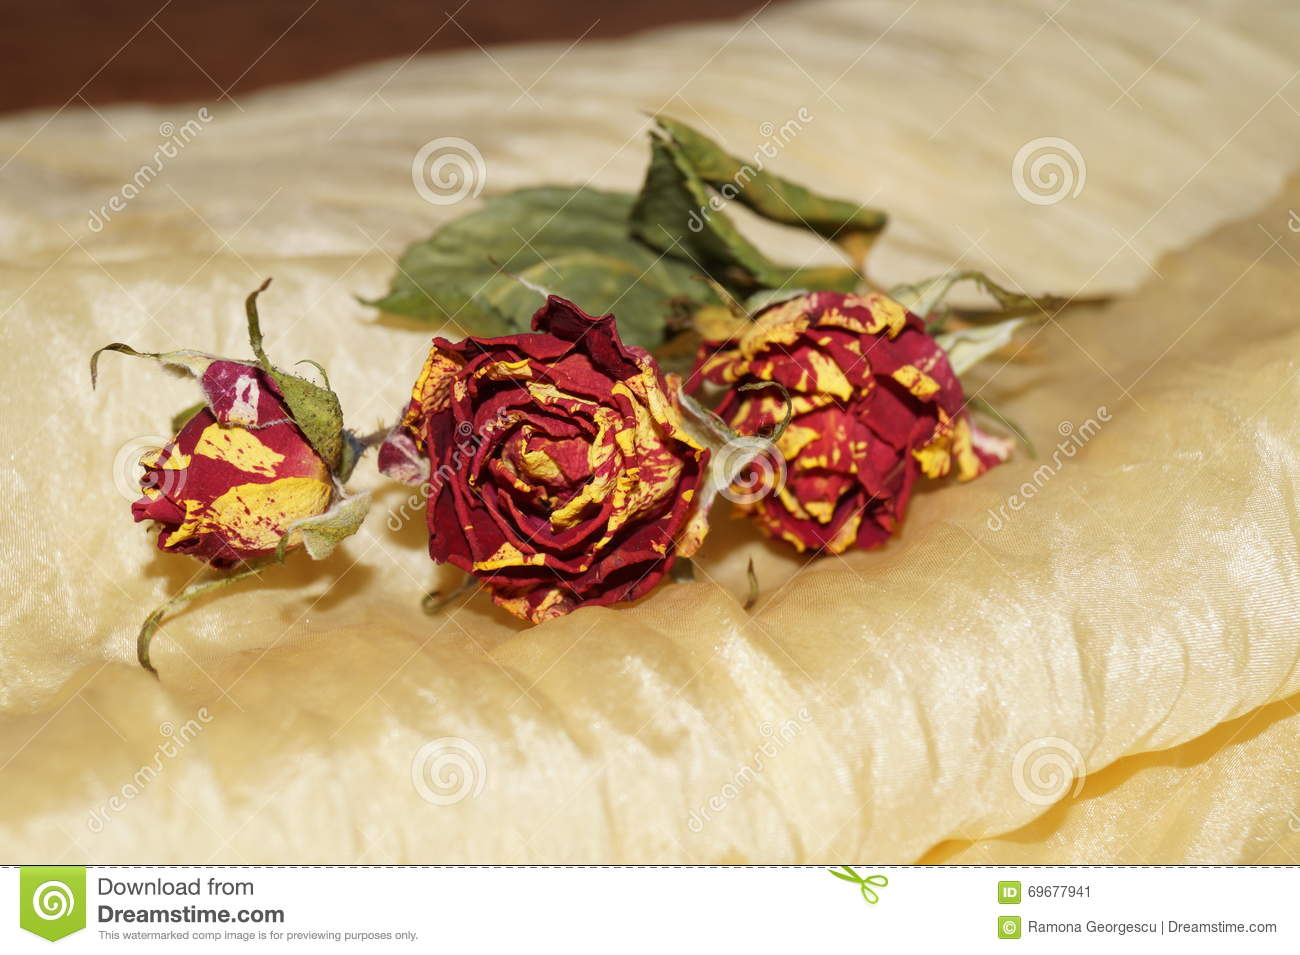 Wither roses on yellow silk stock photo image 69677941 for Natural rose colors